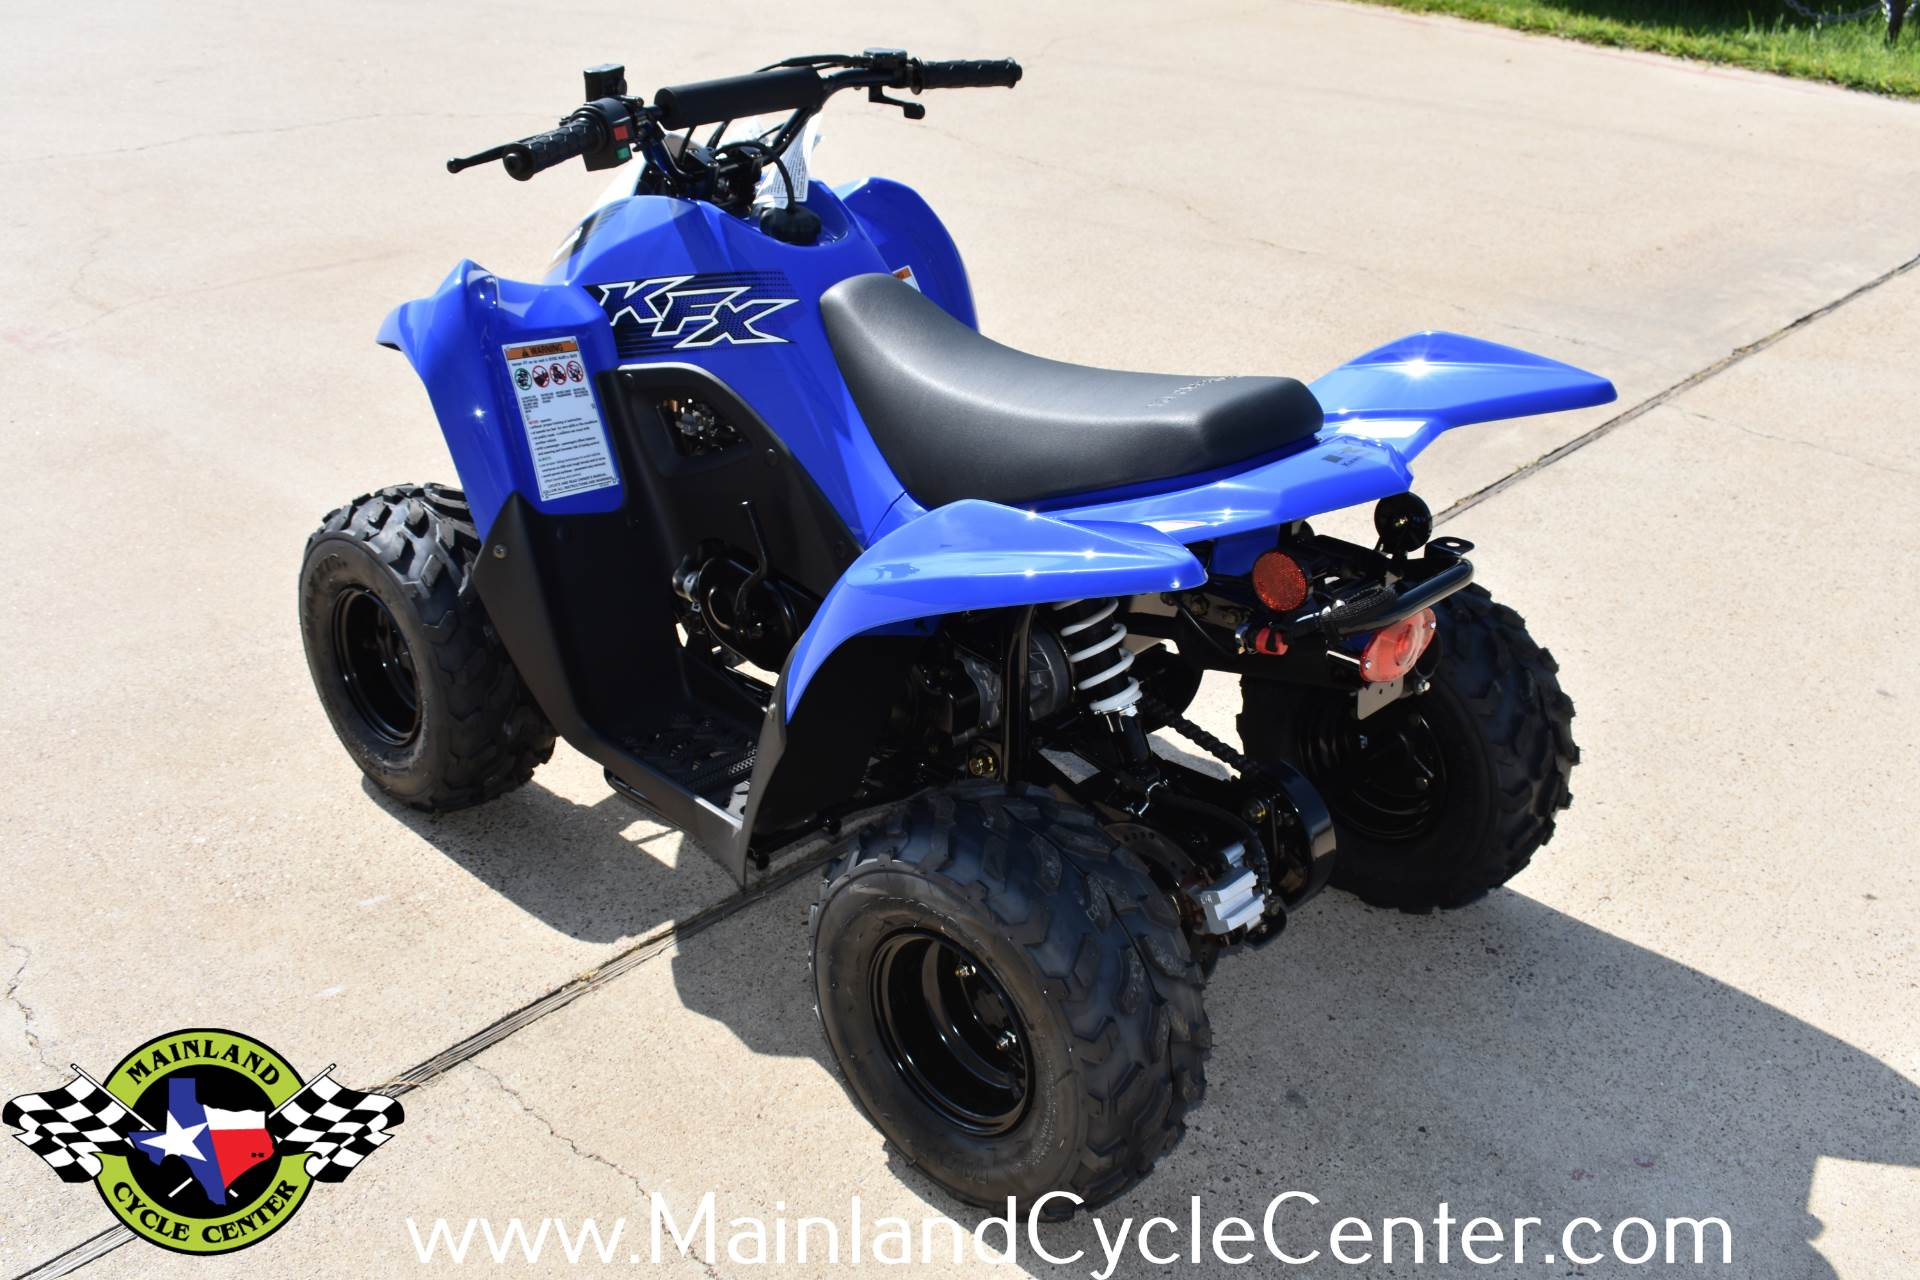 2020 Kawasaki KFX 50 in La Marque, Texas - Photo 6